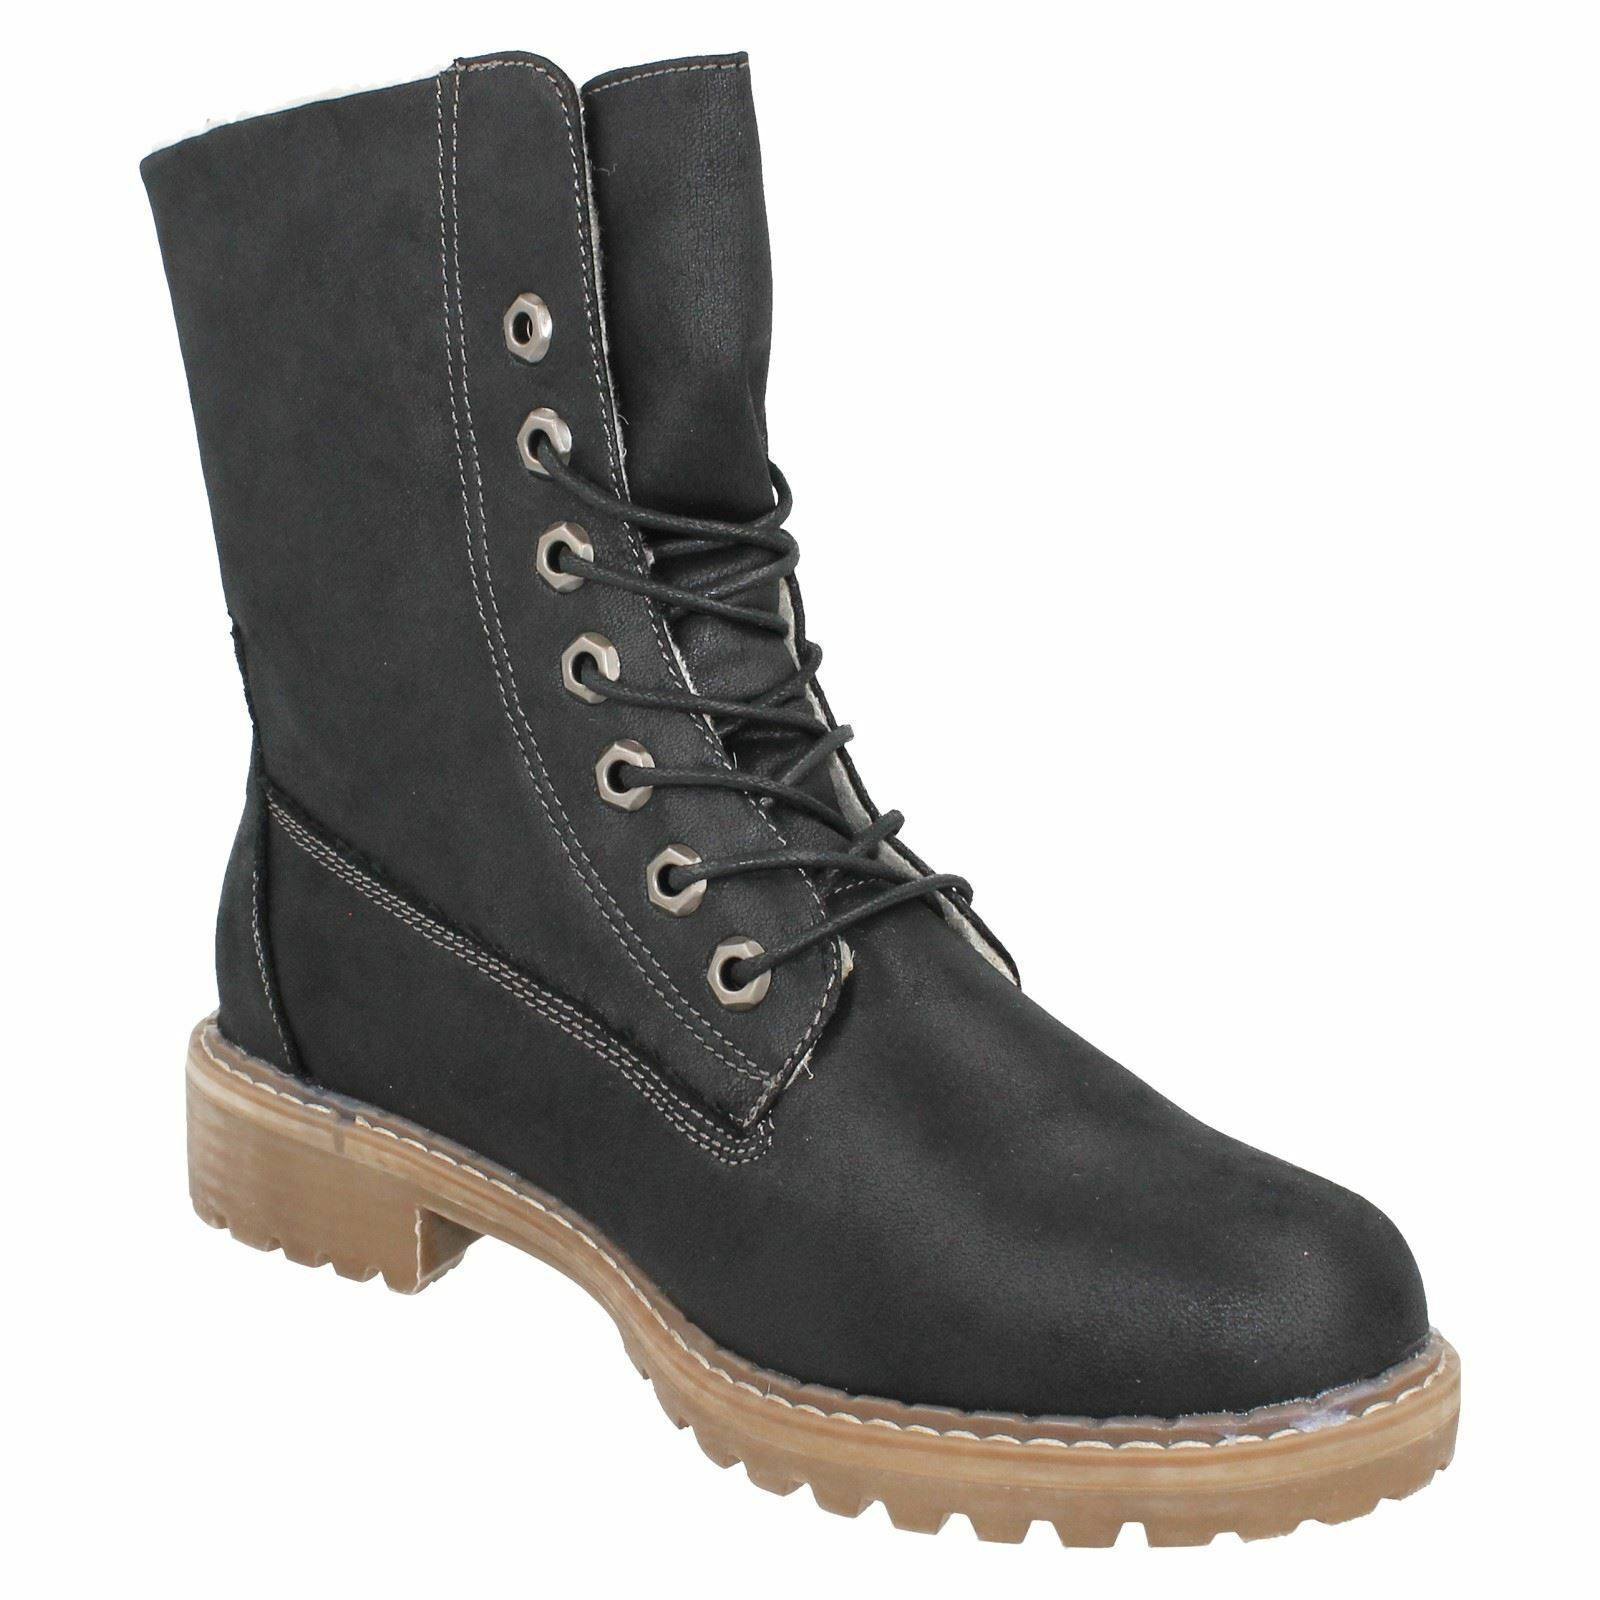 Ladies F5R0867 Lace Up fleace lined Boots By Down To Earth